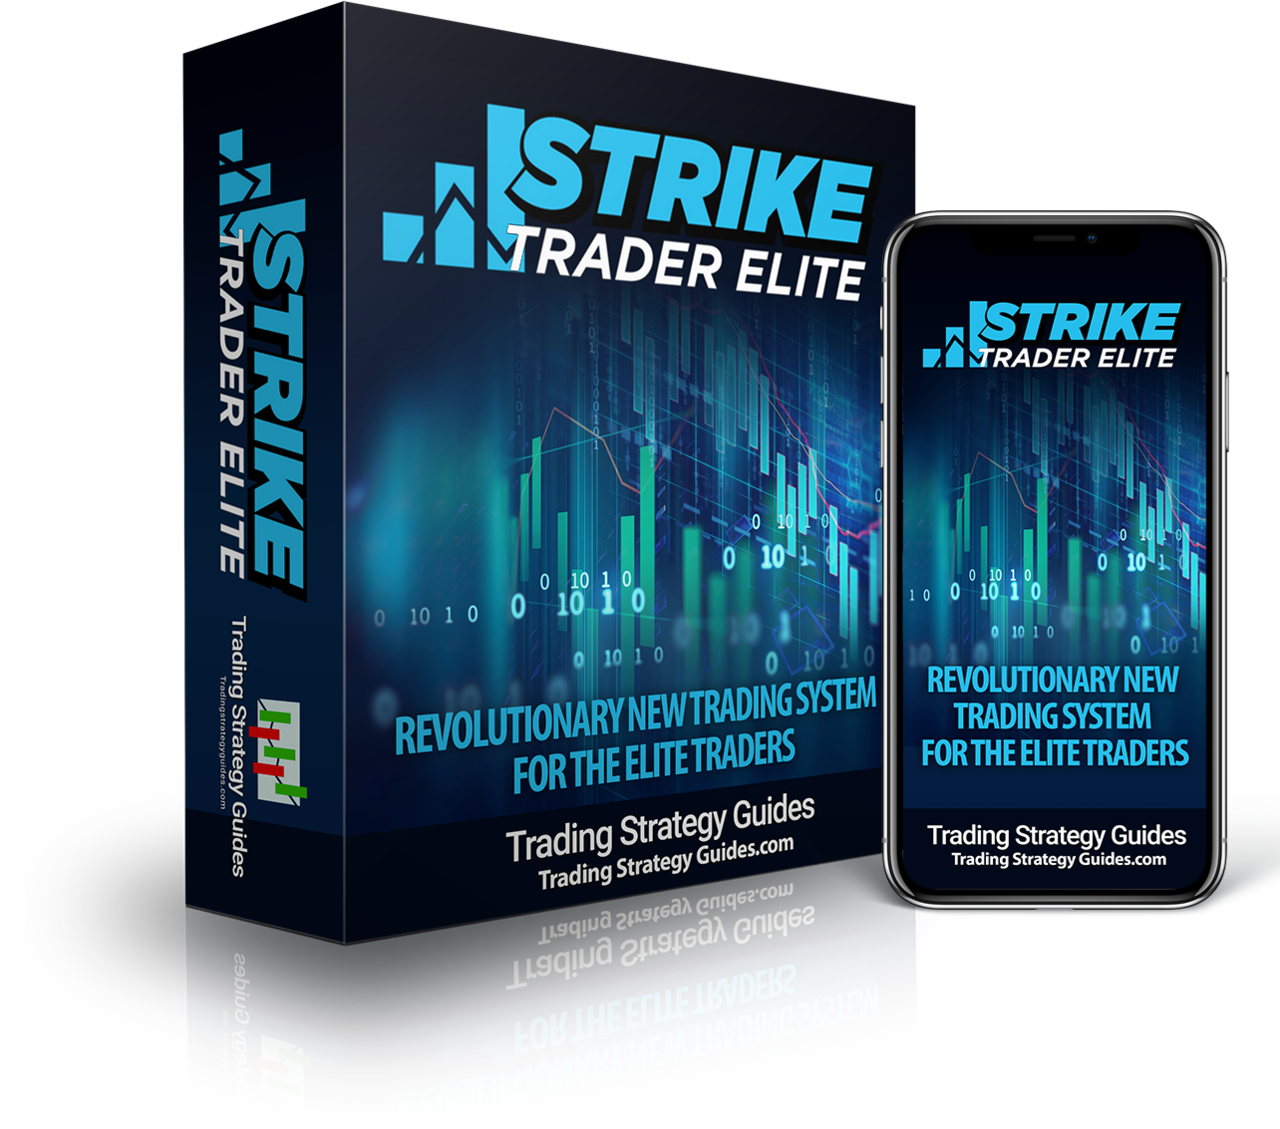 Review Strike Trader Elite Trading System By Trading Strategy